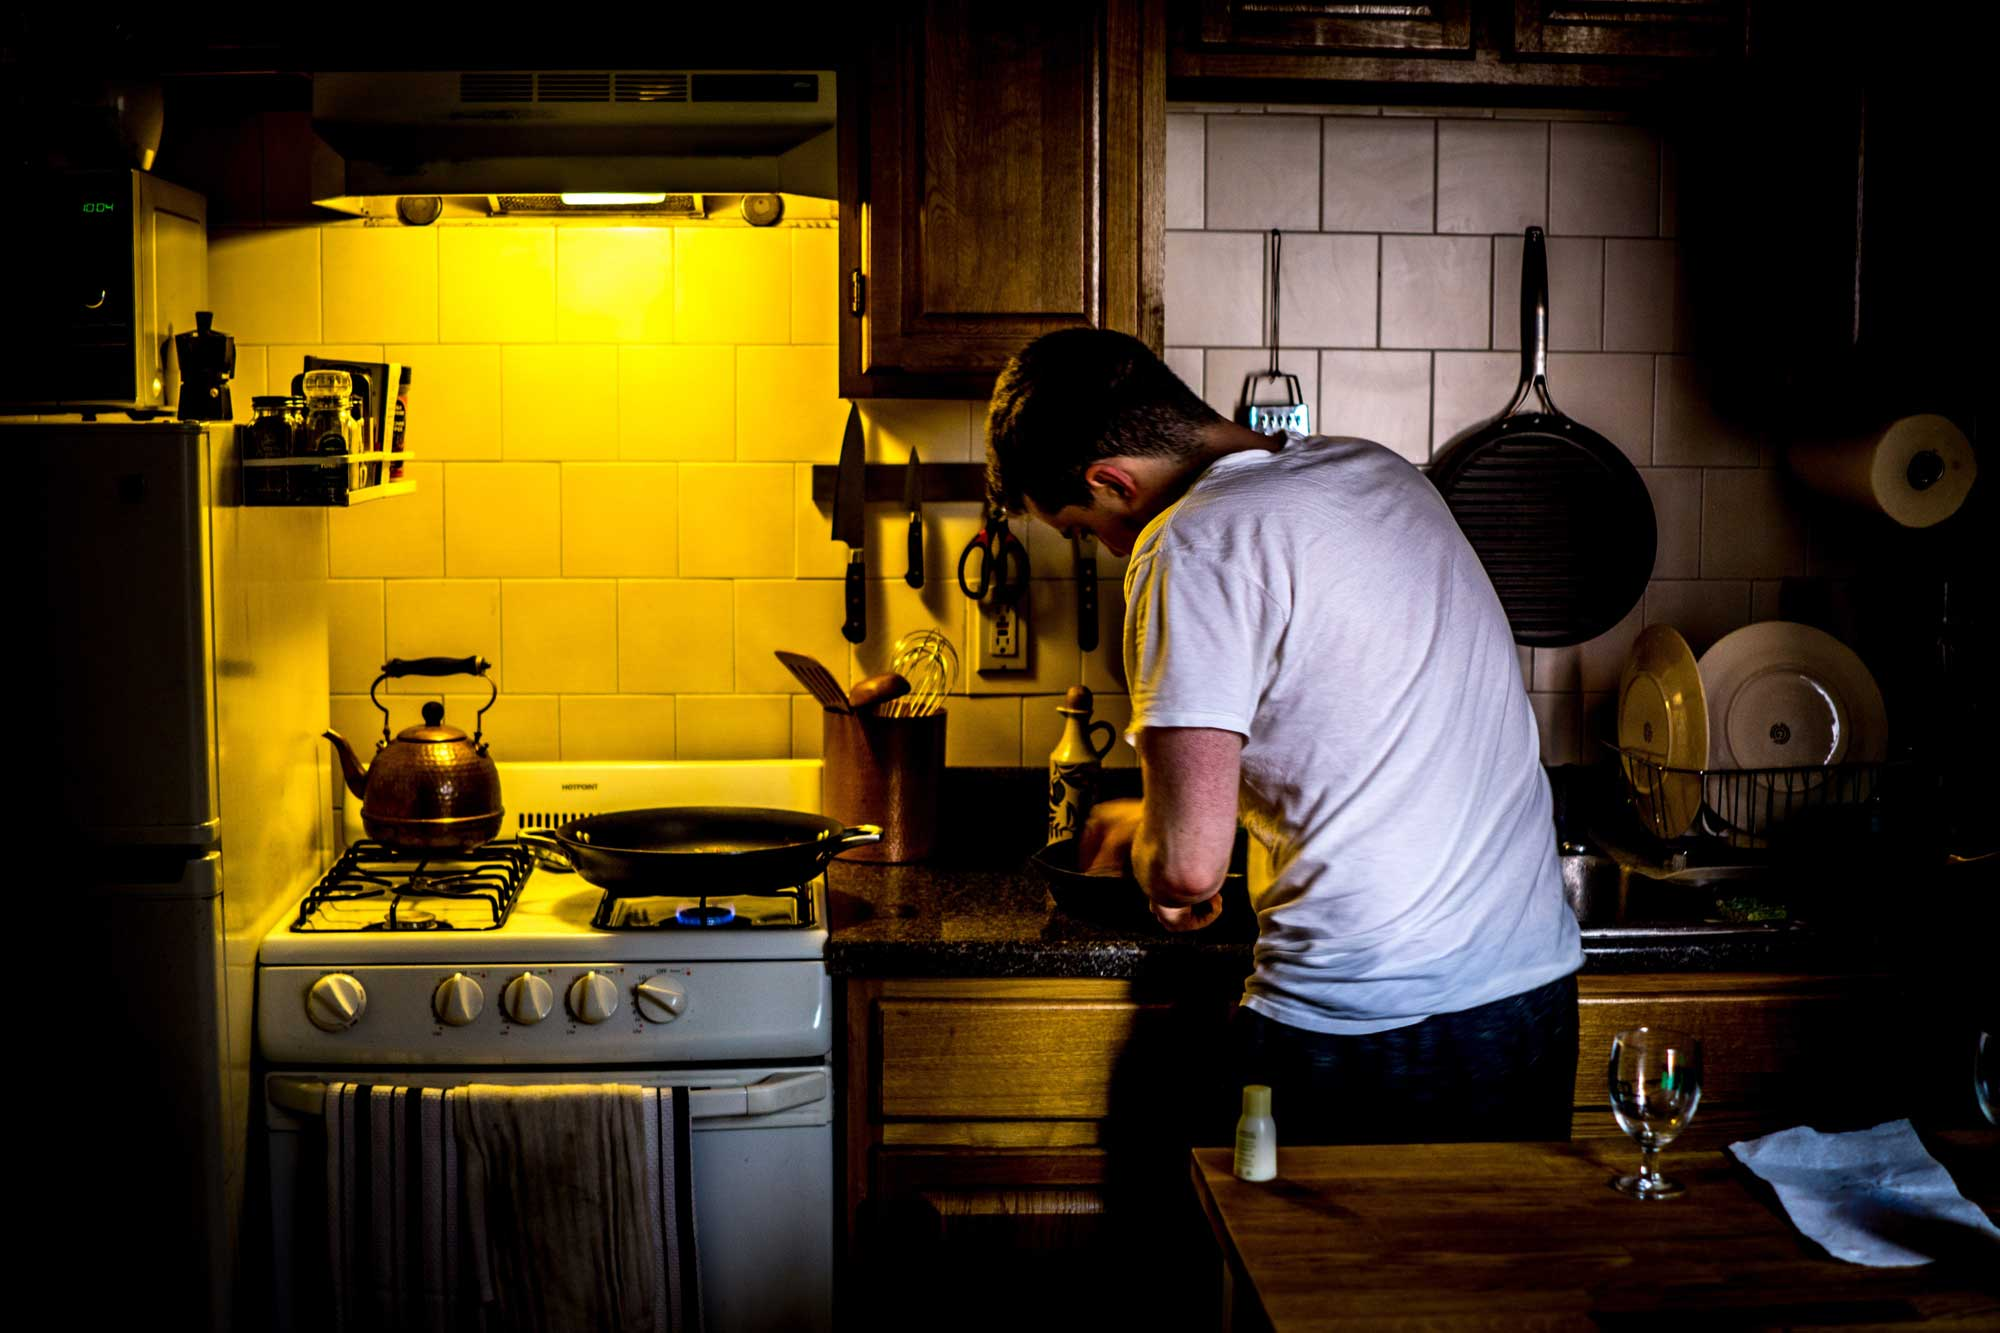 Several home activities can generate VOCs, like cooking